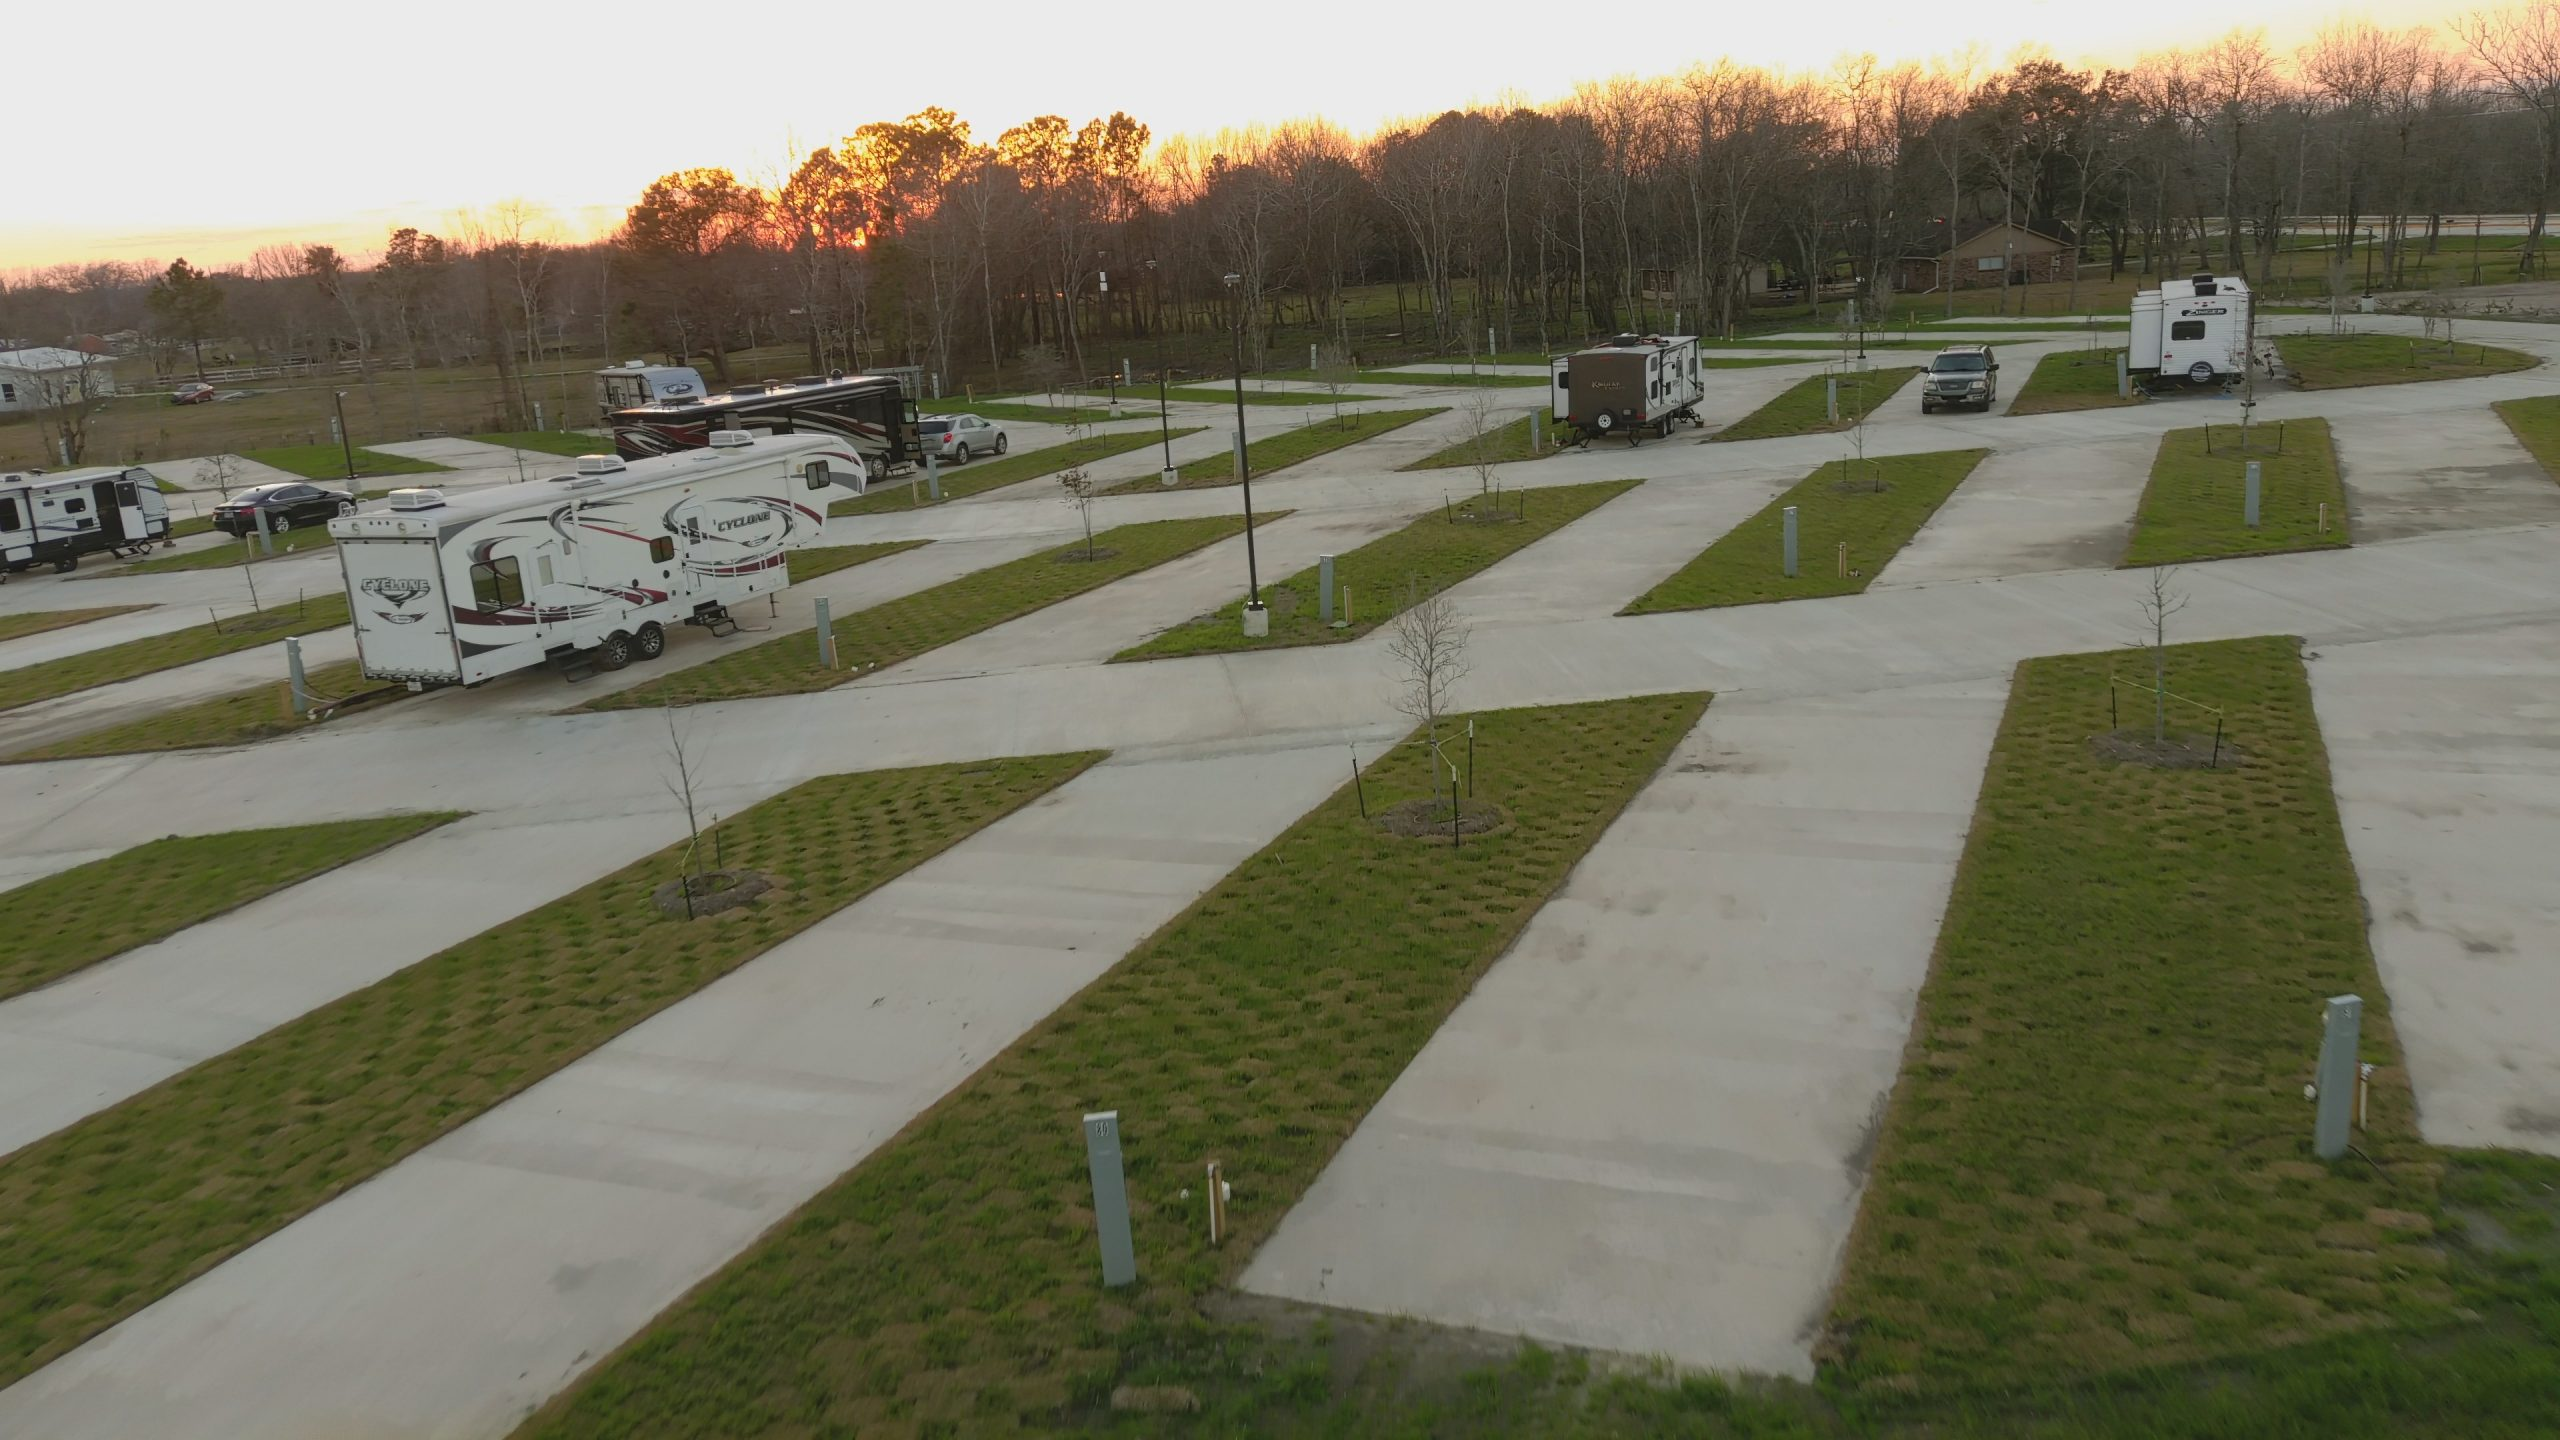 RVs on paved spaces in a clearing surrounded by forest.